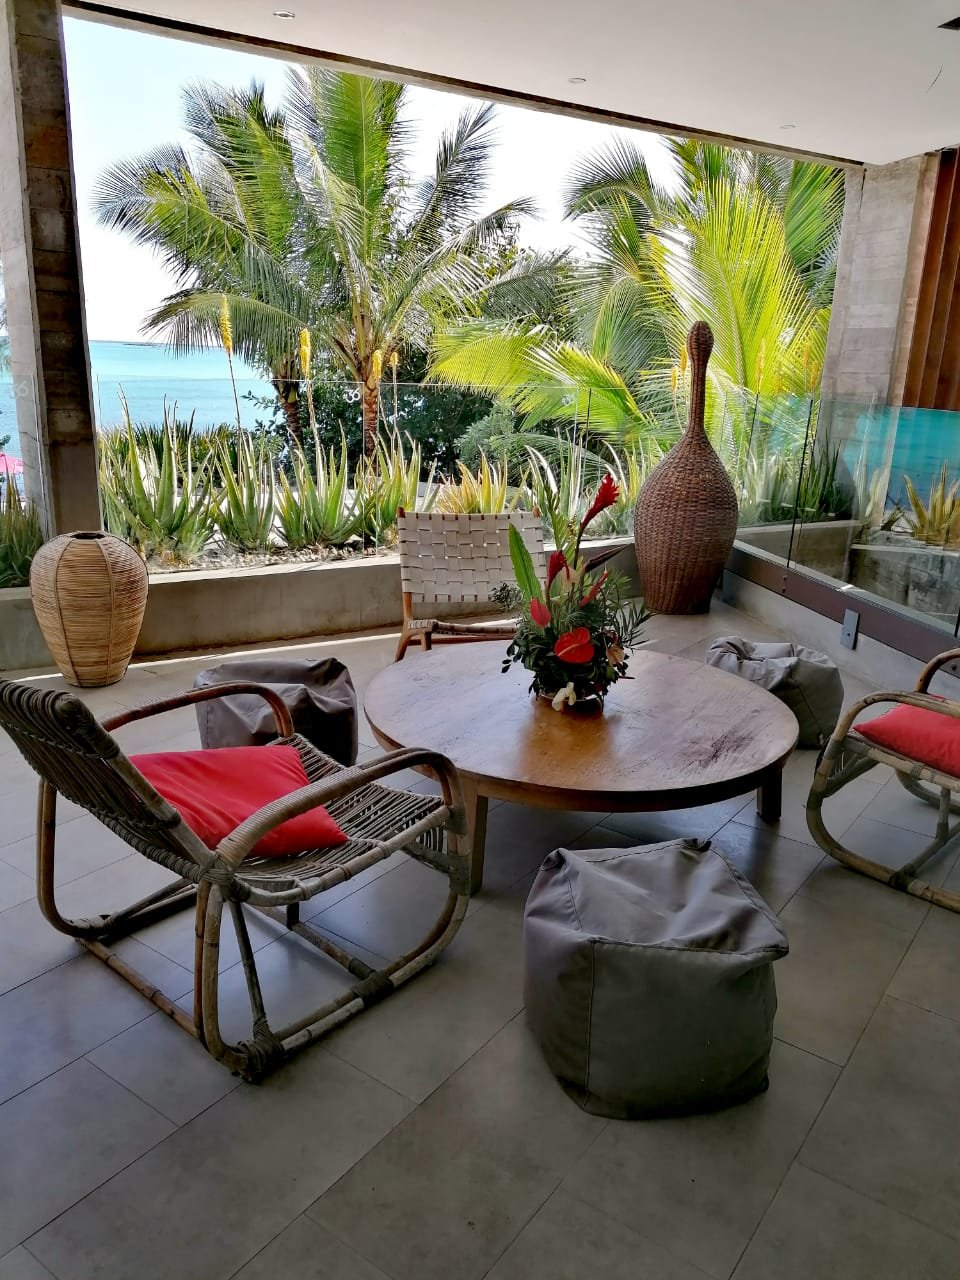 Unique offer! Be a beachfront tenant for only Rs.25,000/month